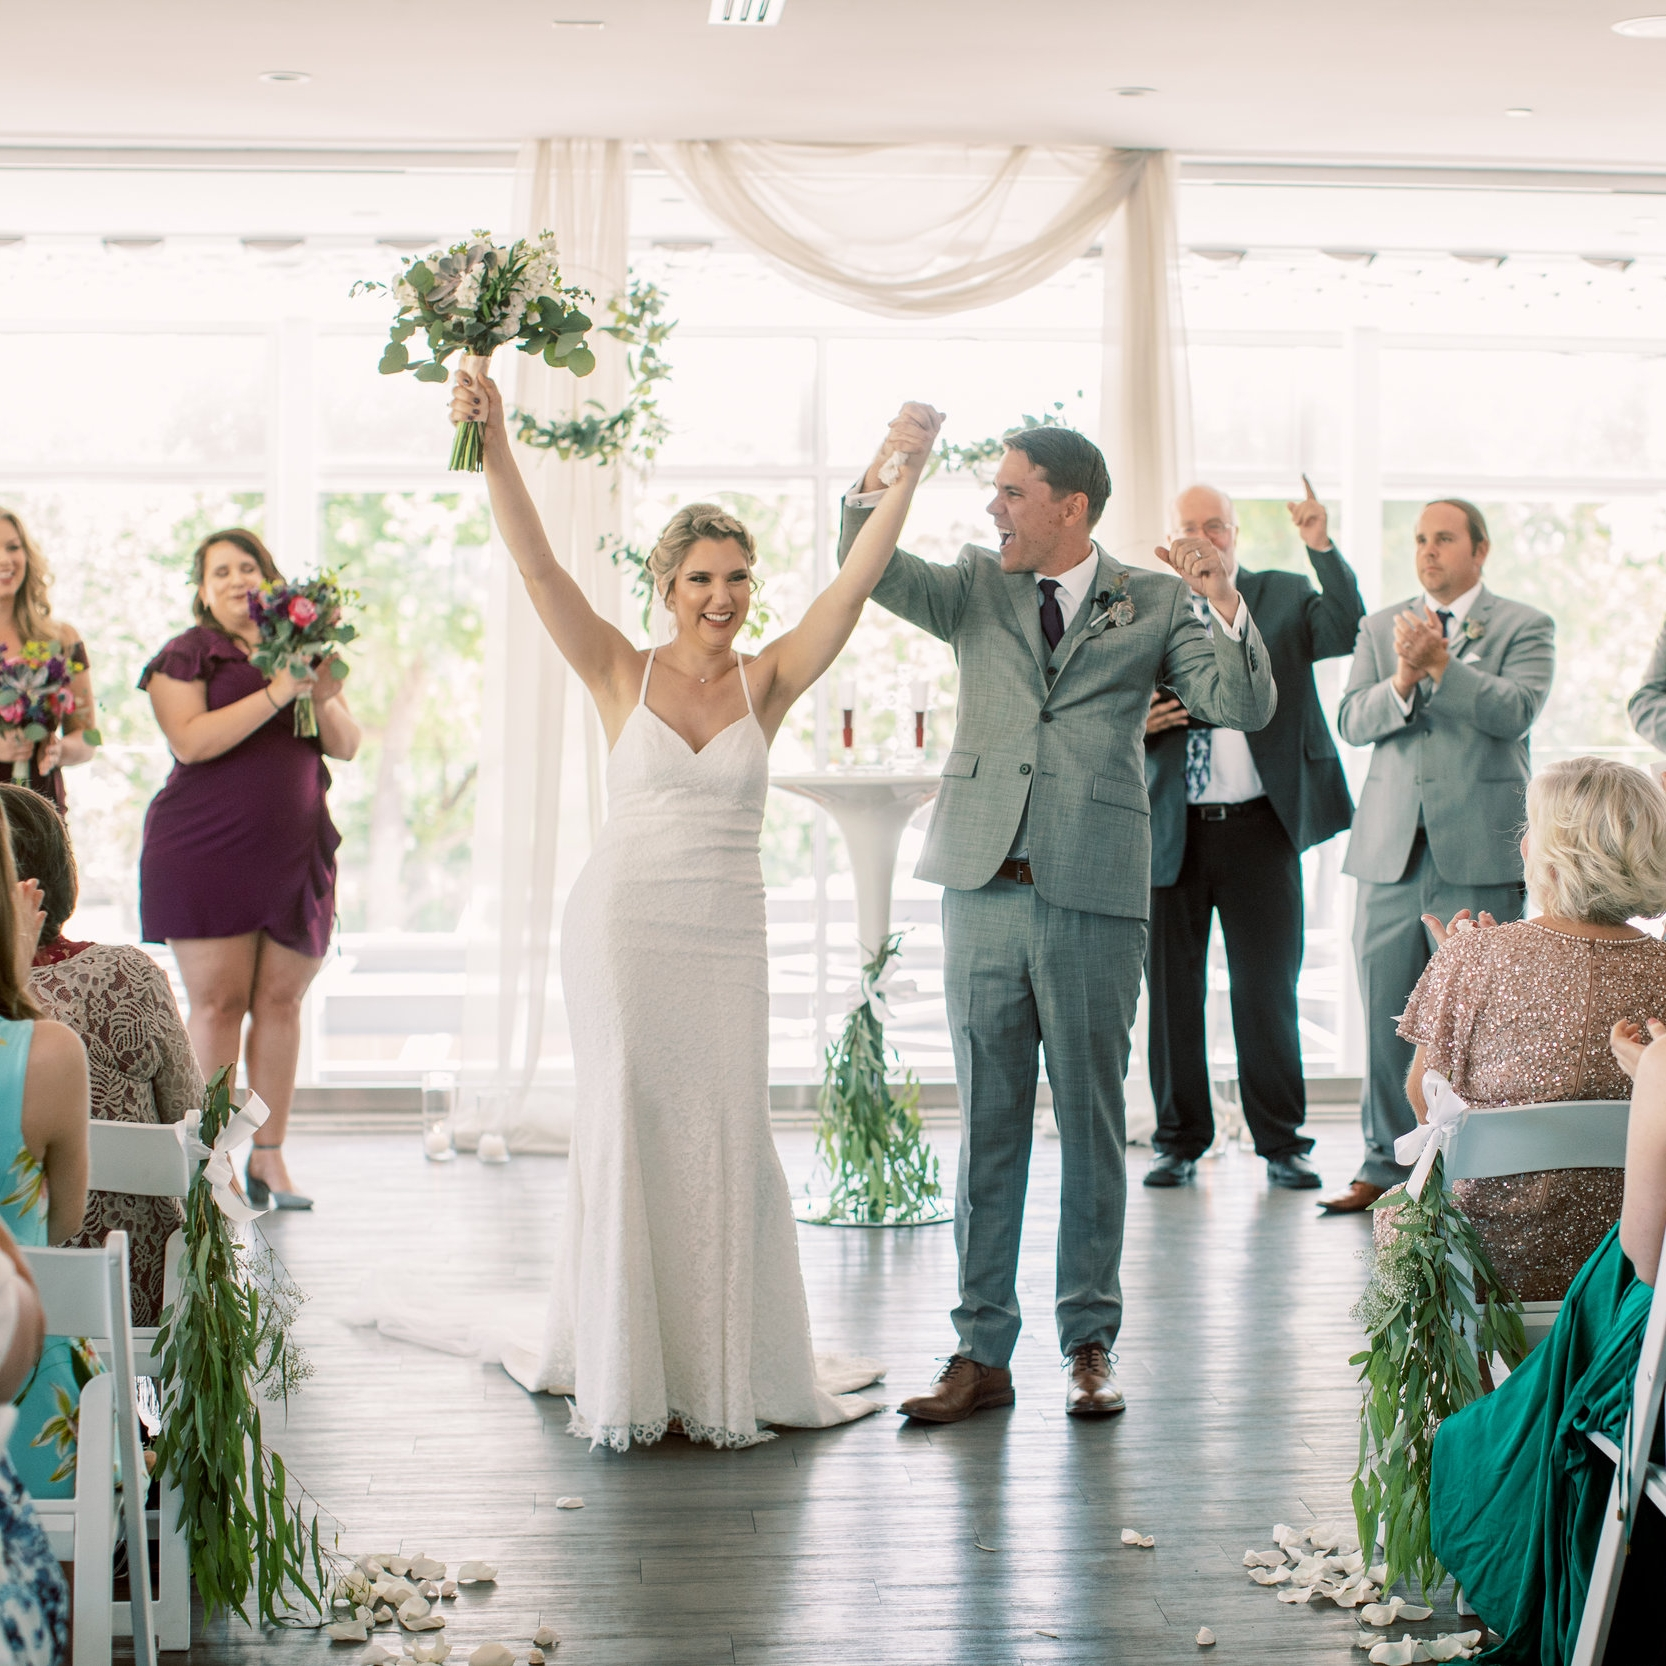 Wil + Katie - The Vision & Love team is so incredibly talented. We are so lucky to have found them to capture our wedding day! Our highlight film far exceeded my expectations and is something I will watch over and over again. I highly recommend working with Delbert & Jovanni!